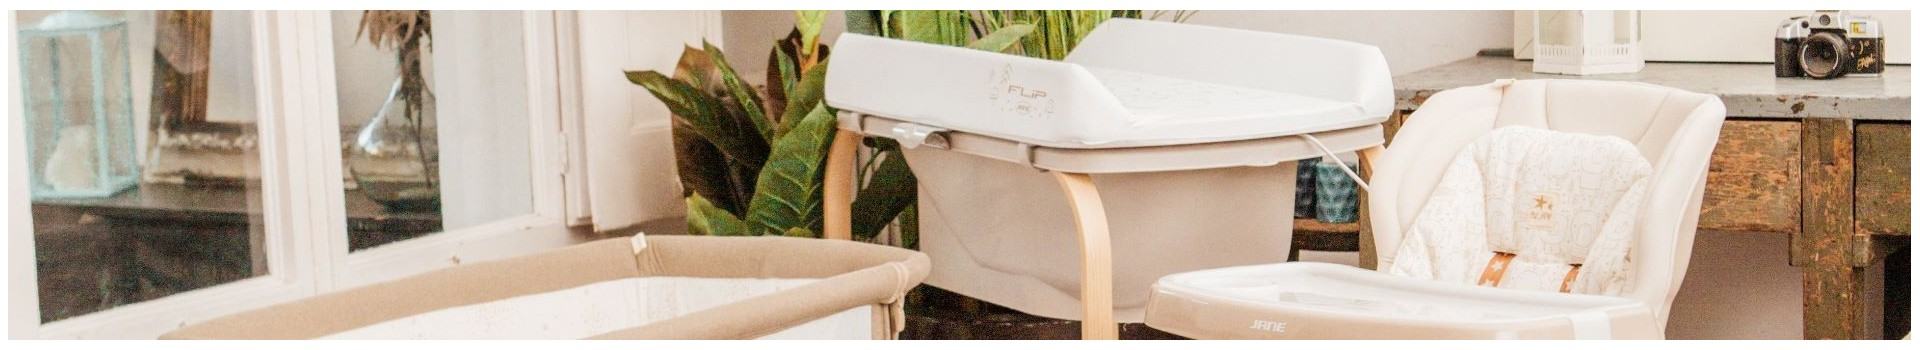 Baby room furniture Nature Edition | Janéworld